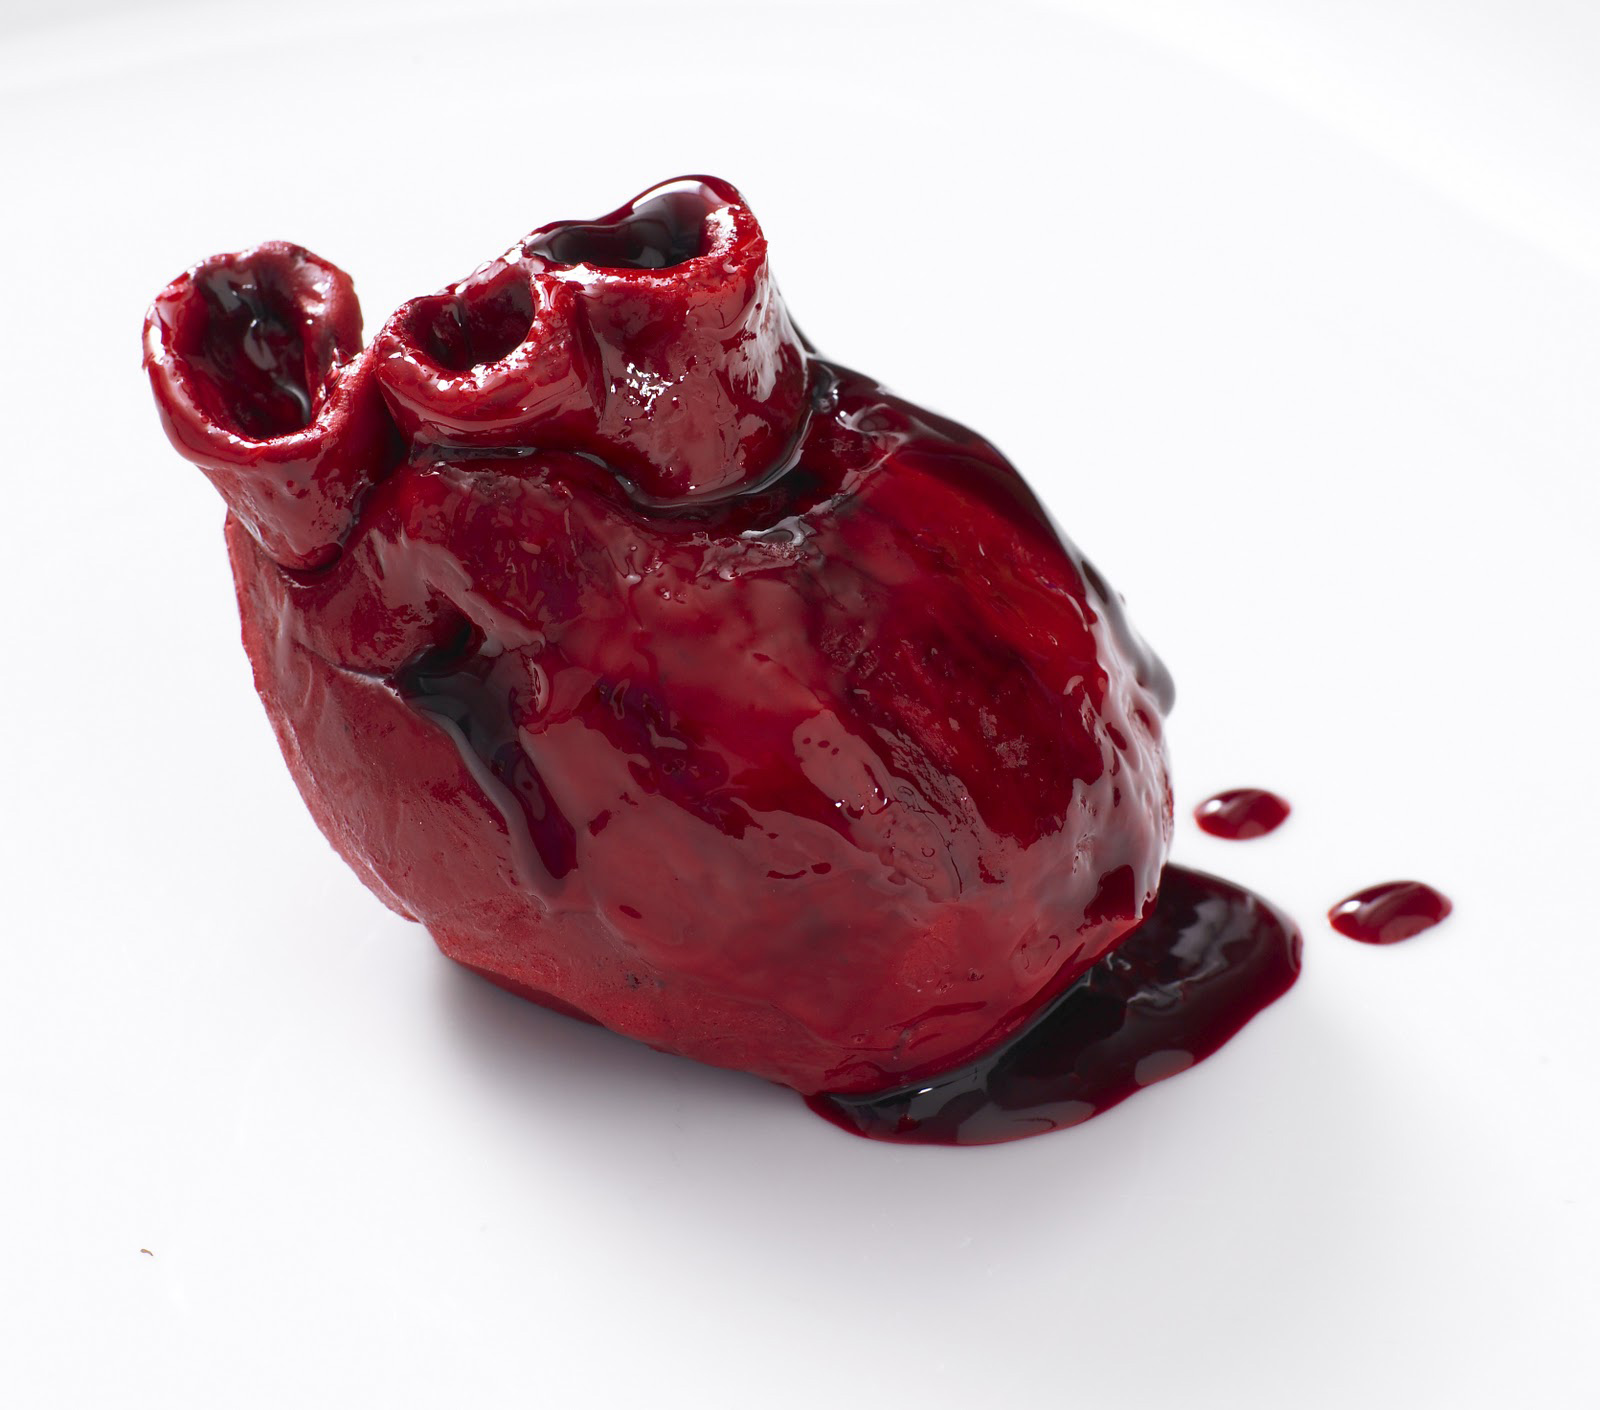 Bleeding Heart Cake Recipe By Lily Vanilli